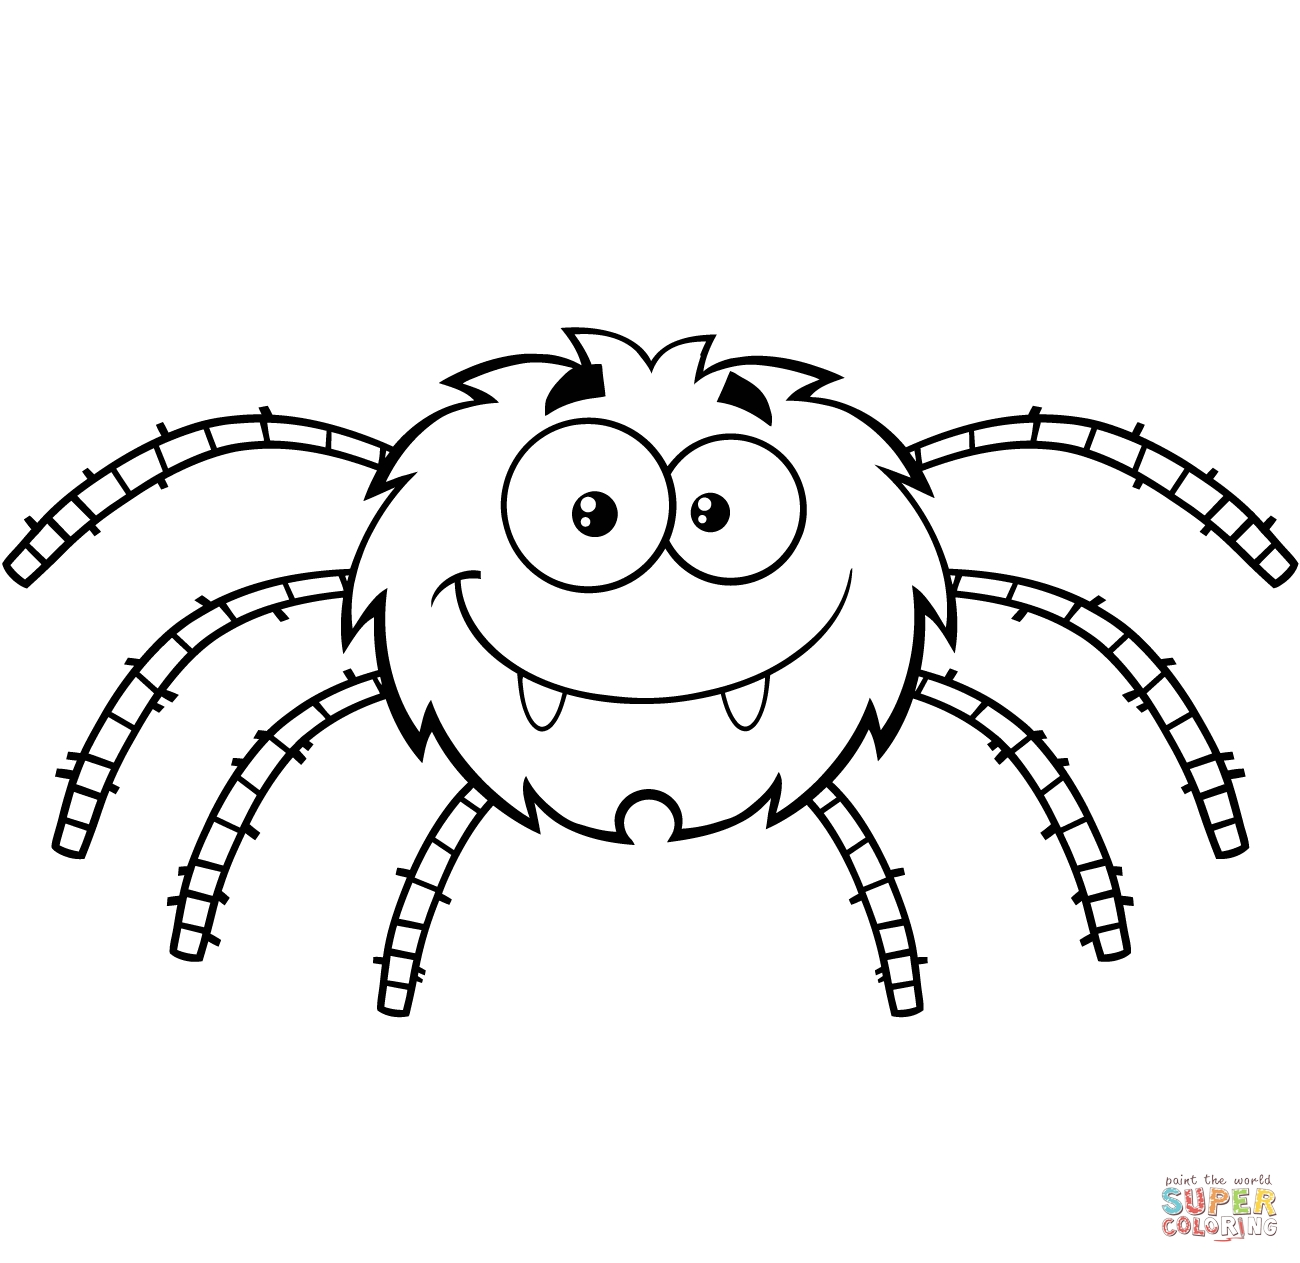 spider coloring pages - funny cartoon spider